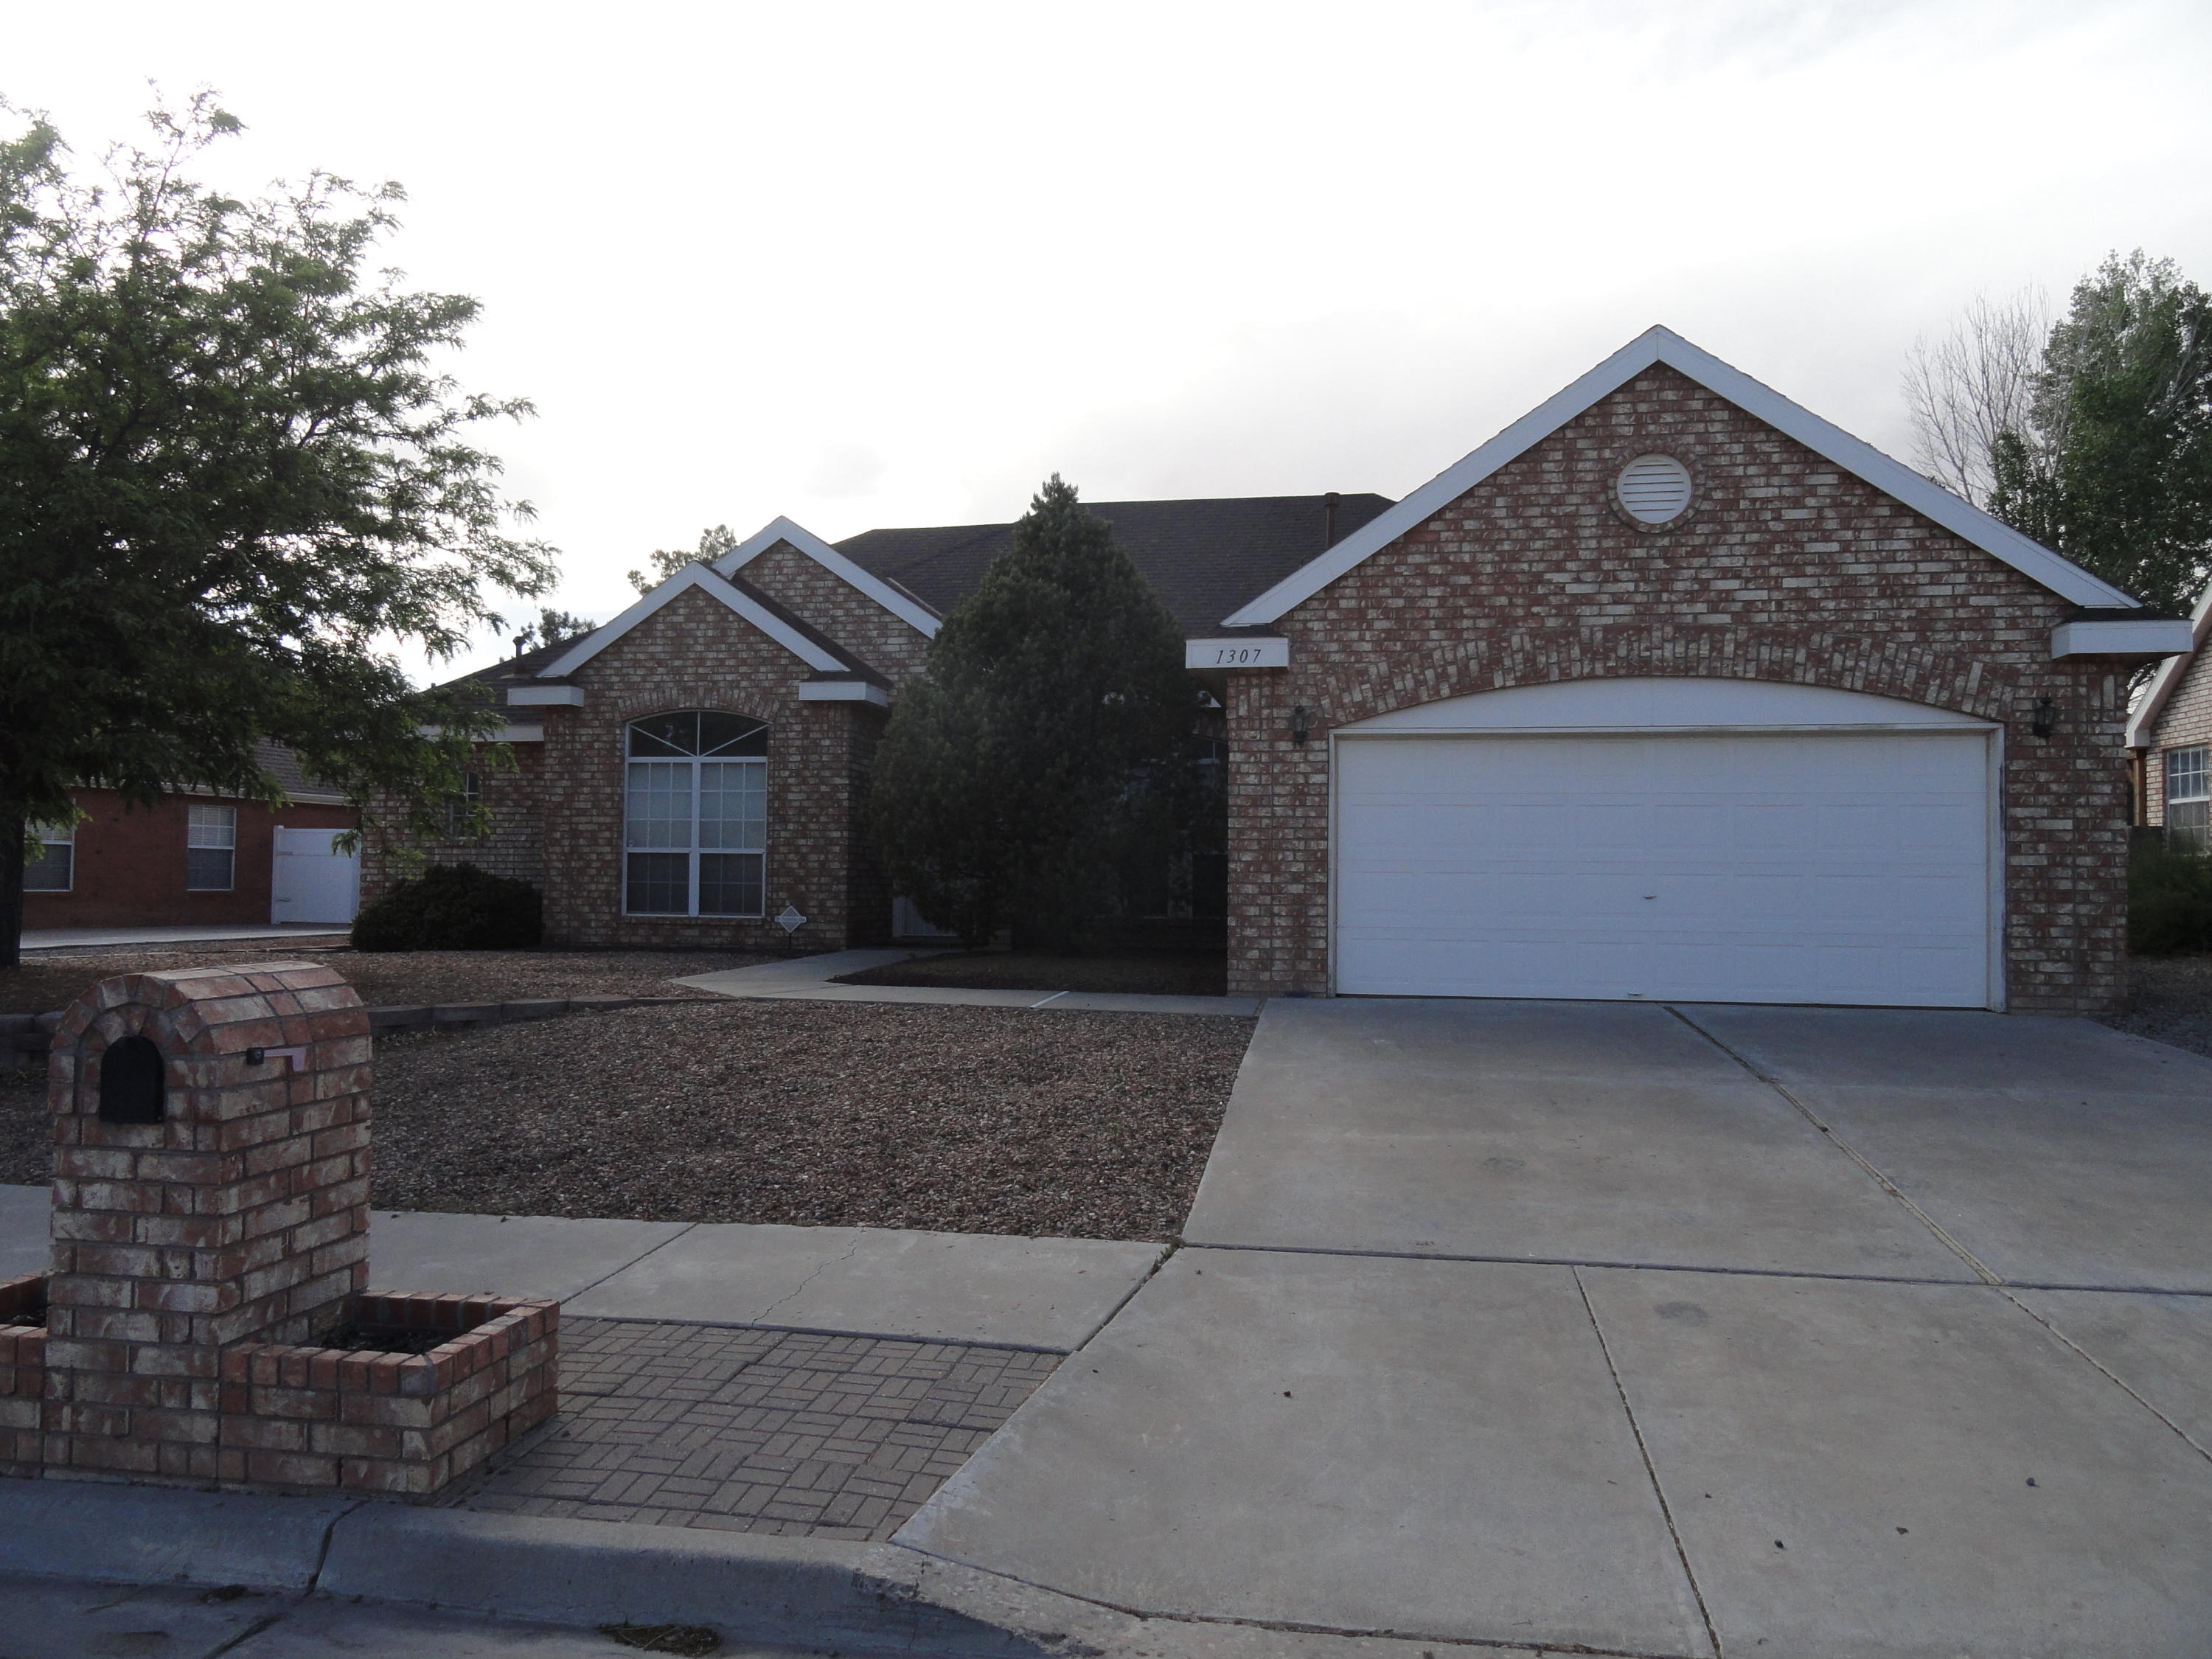 Fresh Paint. Fresh carpet and ready for a new owner. great Los Lunas location with easy freeway access. Home features 3 bedrooms, an office with a closet or 4th bedroom. Livingroom, family room, dining room plus breakfast area. Large gourmet kitchen. Laundry has stainless mud sink with gas and 220.